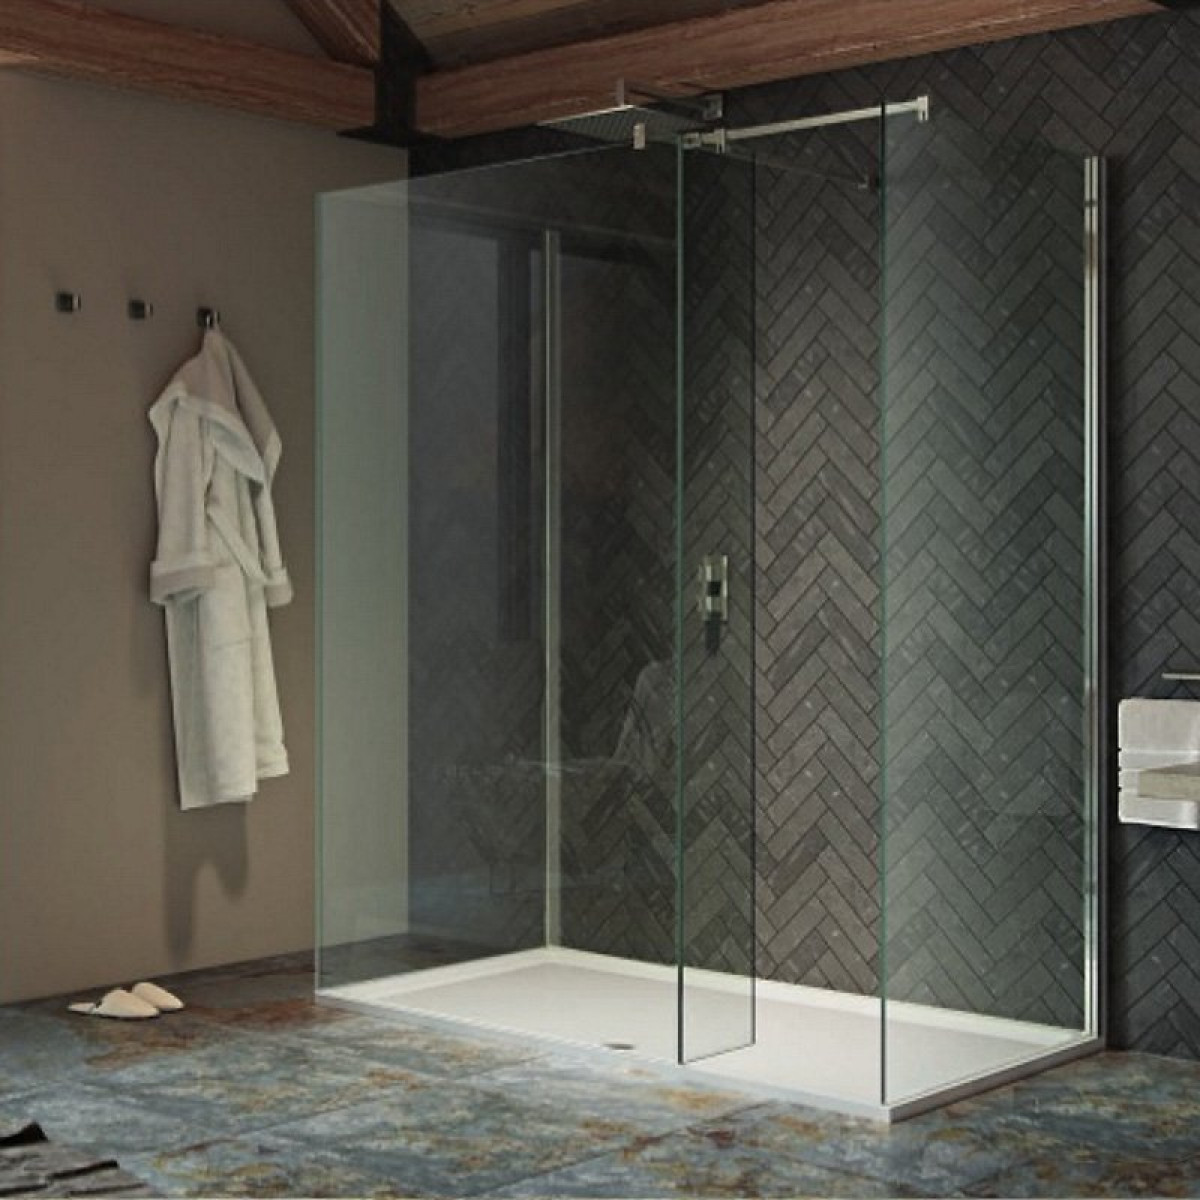 Kudos Ultimate2 8mm Three Sided 1500mm Walk-in Shower Enclosure